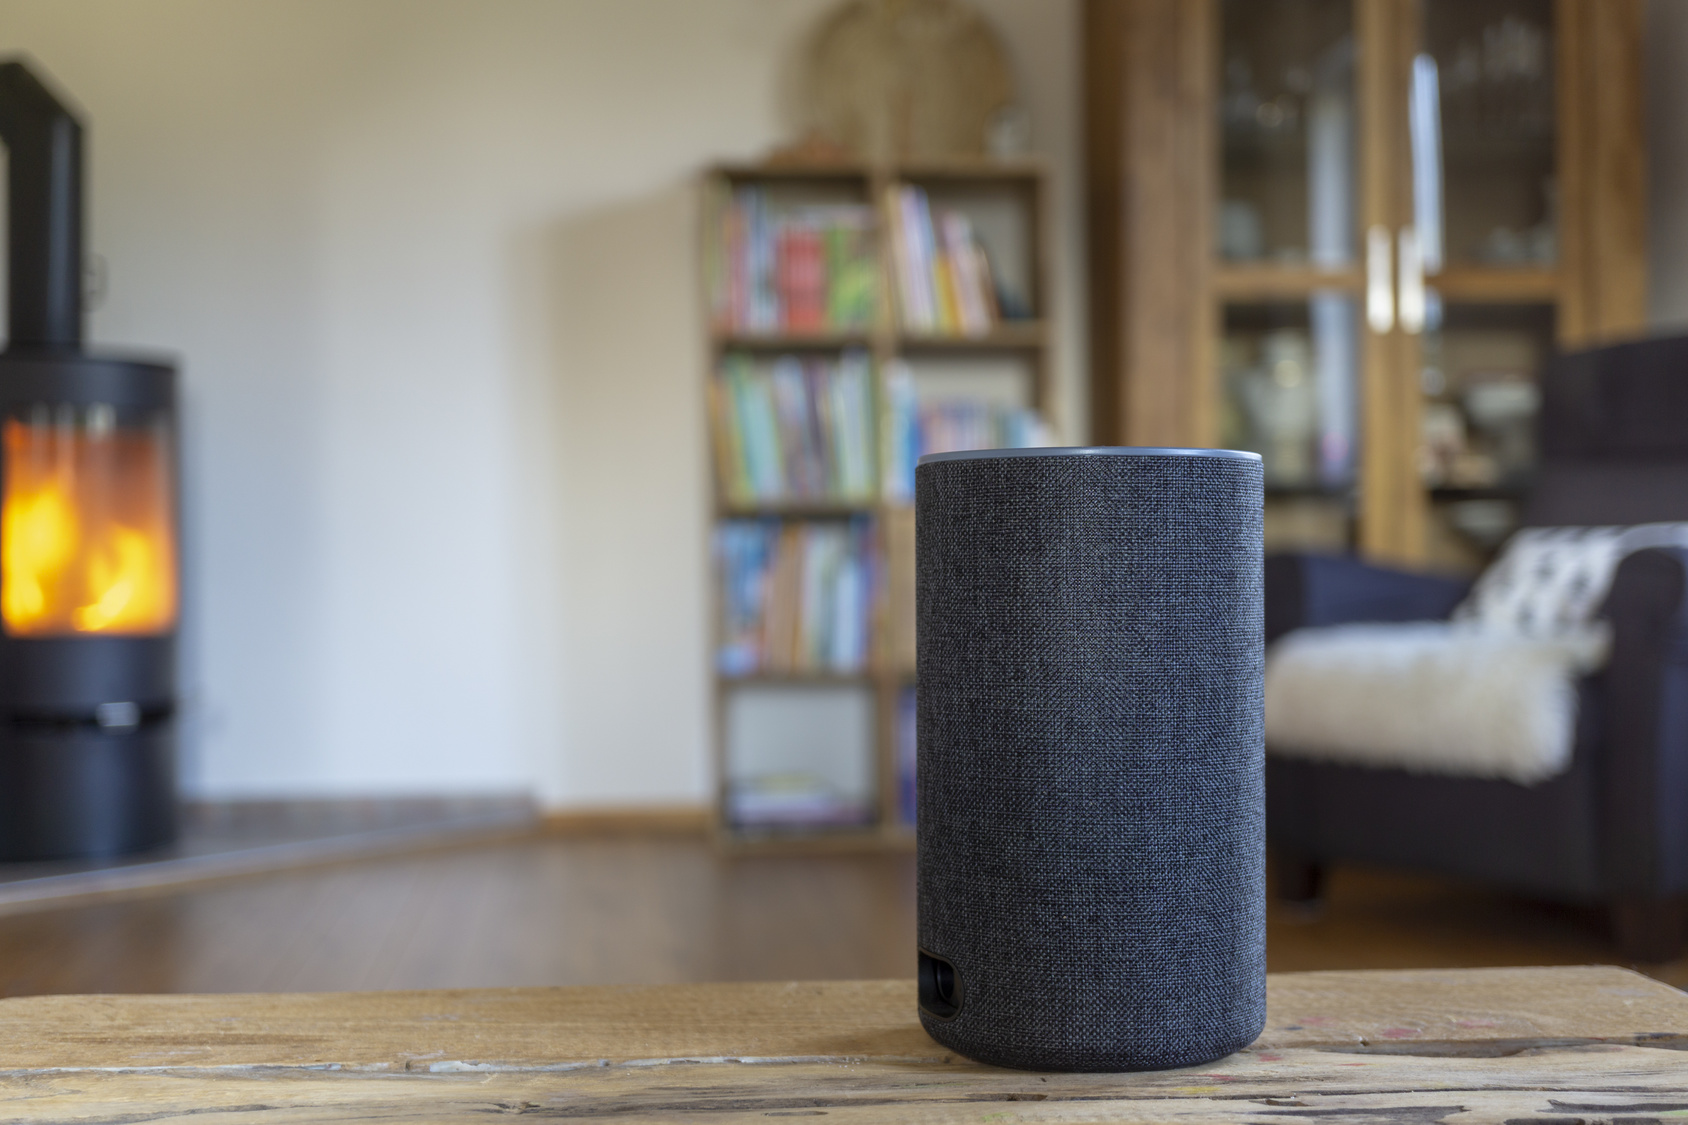 Voice-Activated-Speaker-in-Home